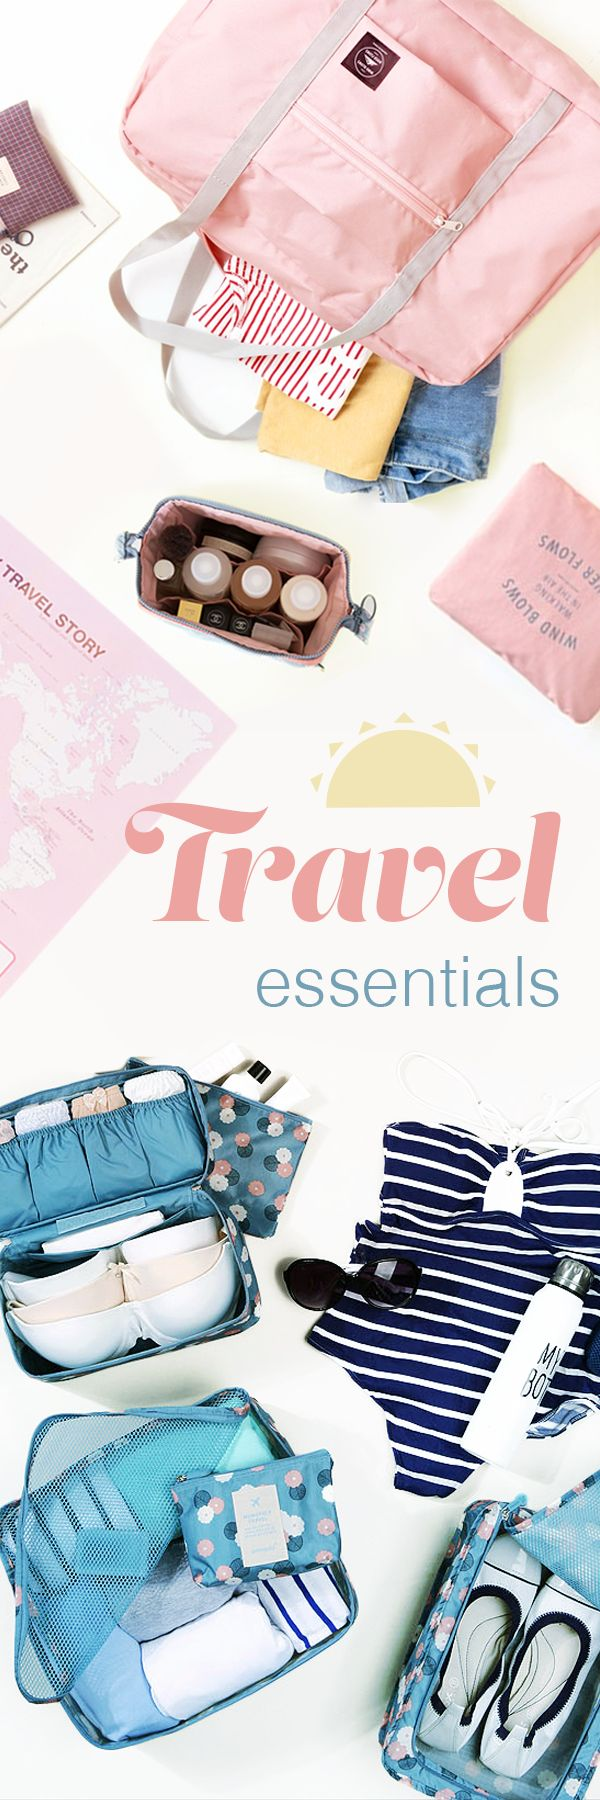 Want to getaway? We can help you prepare & pack everything down pat! Having the right luggage can streamline the travel process & let you focus on the fun part of your vacation! Use cute Travel Pouches to organize your clothes, toiletries, & more so you can find them when you need them. You can zip through the airport with a stylish yet functional Passport Case & Luggage Tag. Then go & be an explorer with a light & chic Travel bag or Backpack! Shop for a peace of mind. Relaxation, here you…